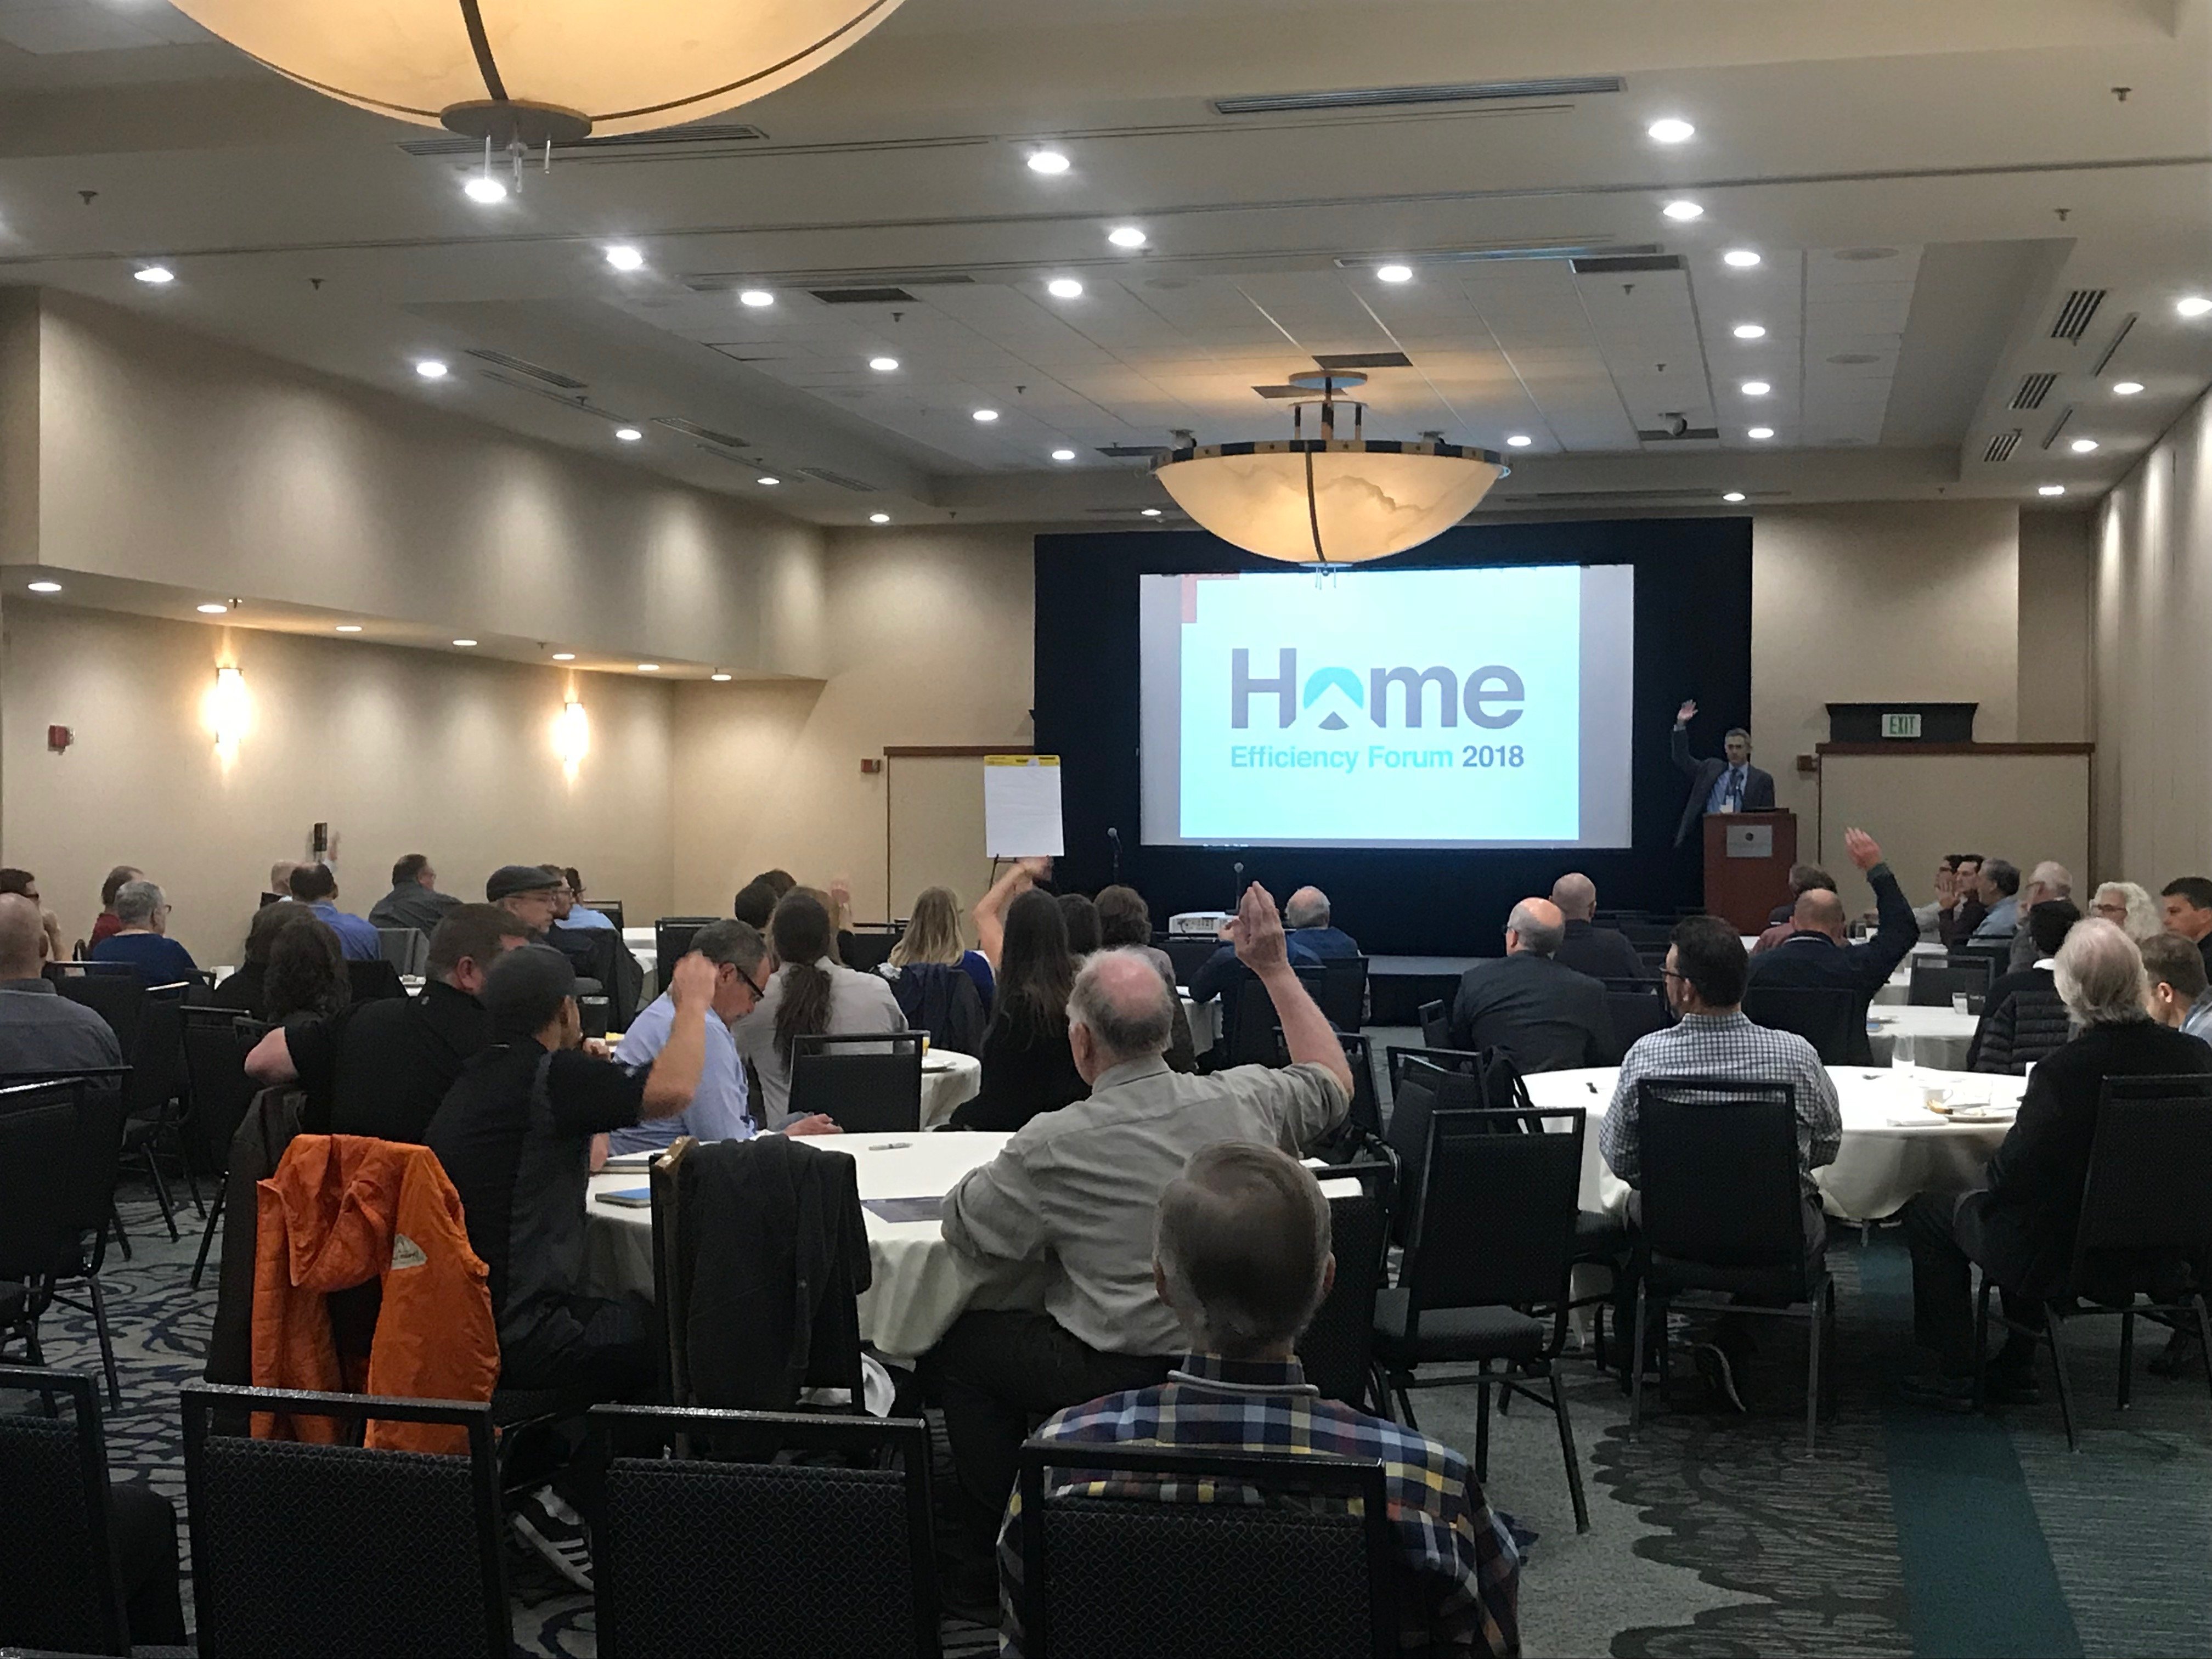 People viewing presentation in conference space for HEF 2018.